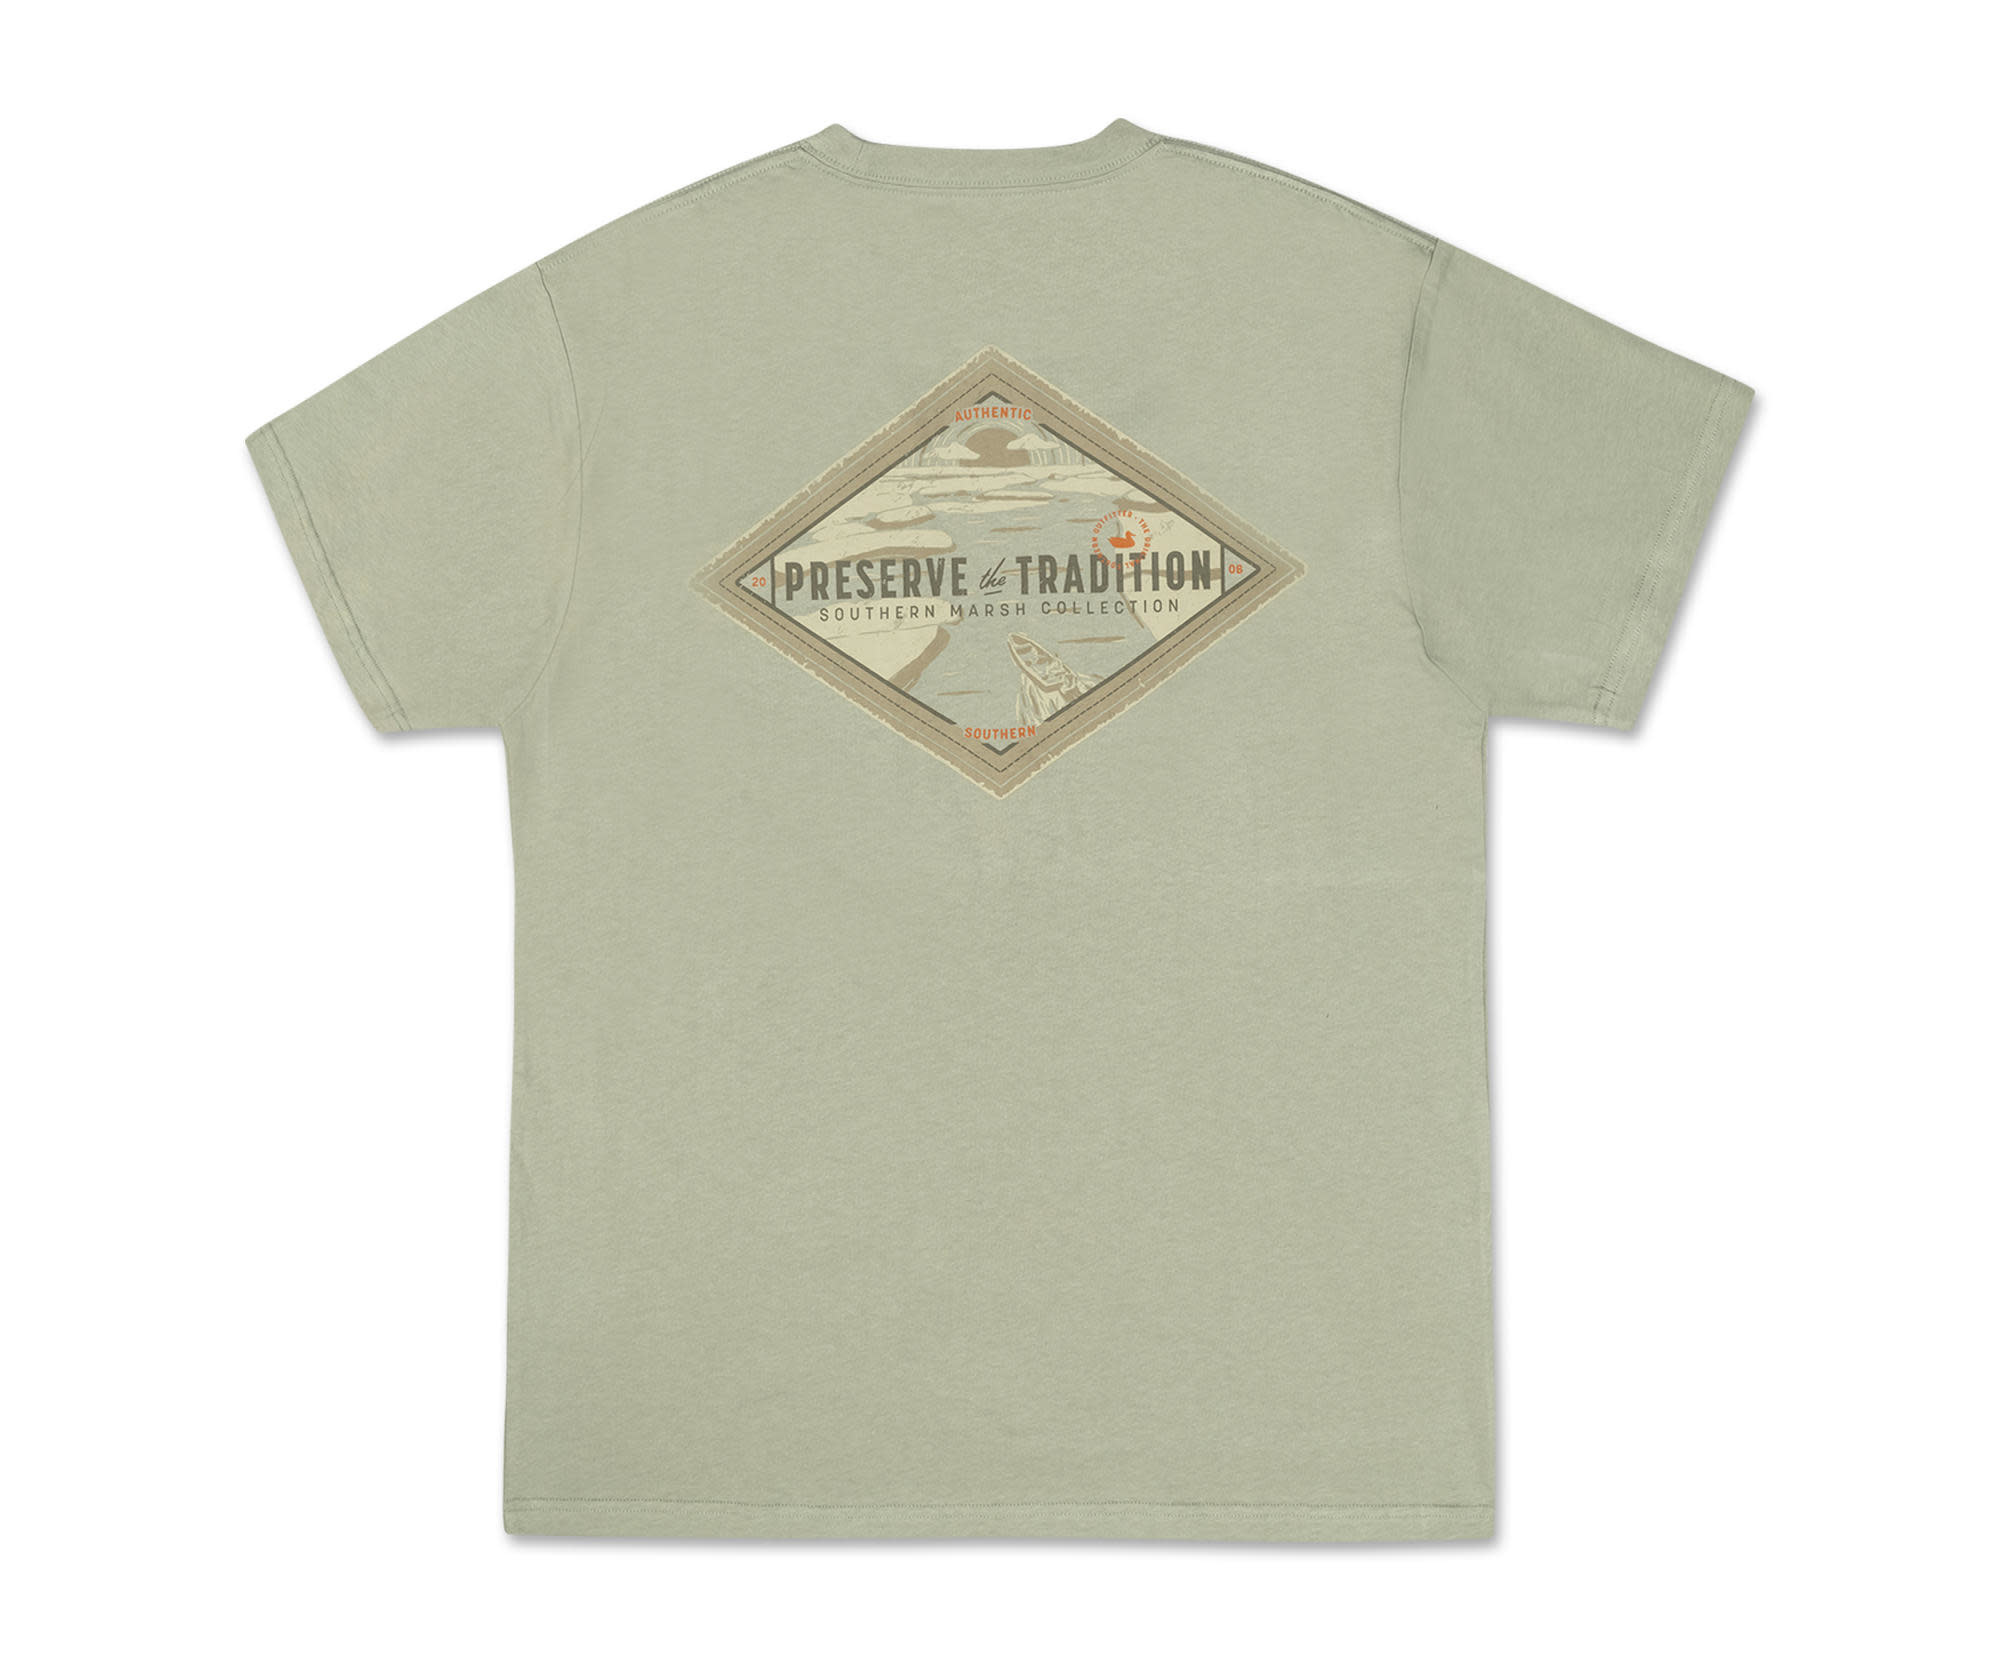 SOUTHERN MARSH SOUTHERN TRADITION TEE-MORNING RISE